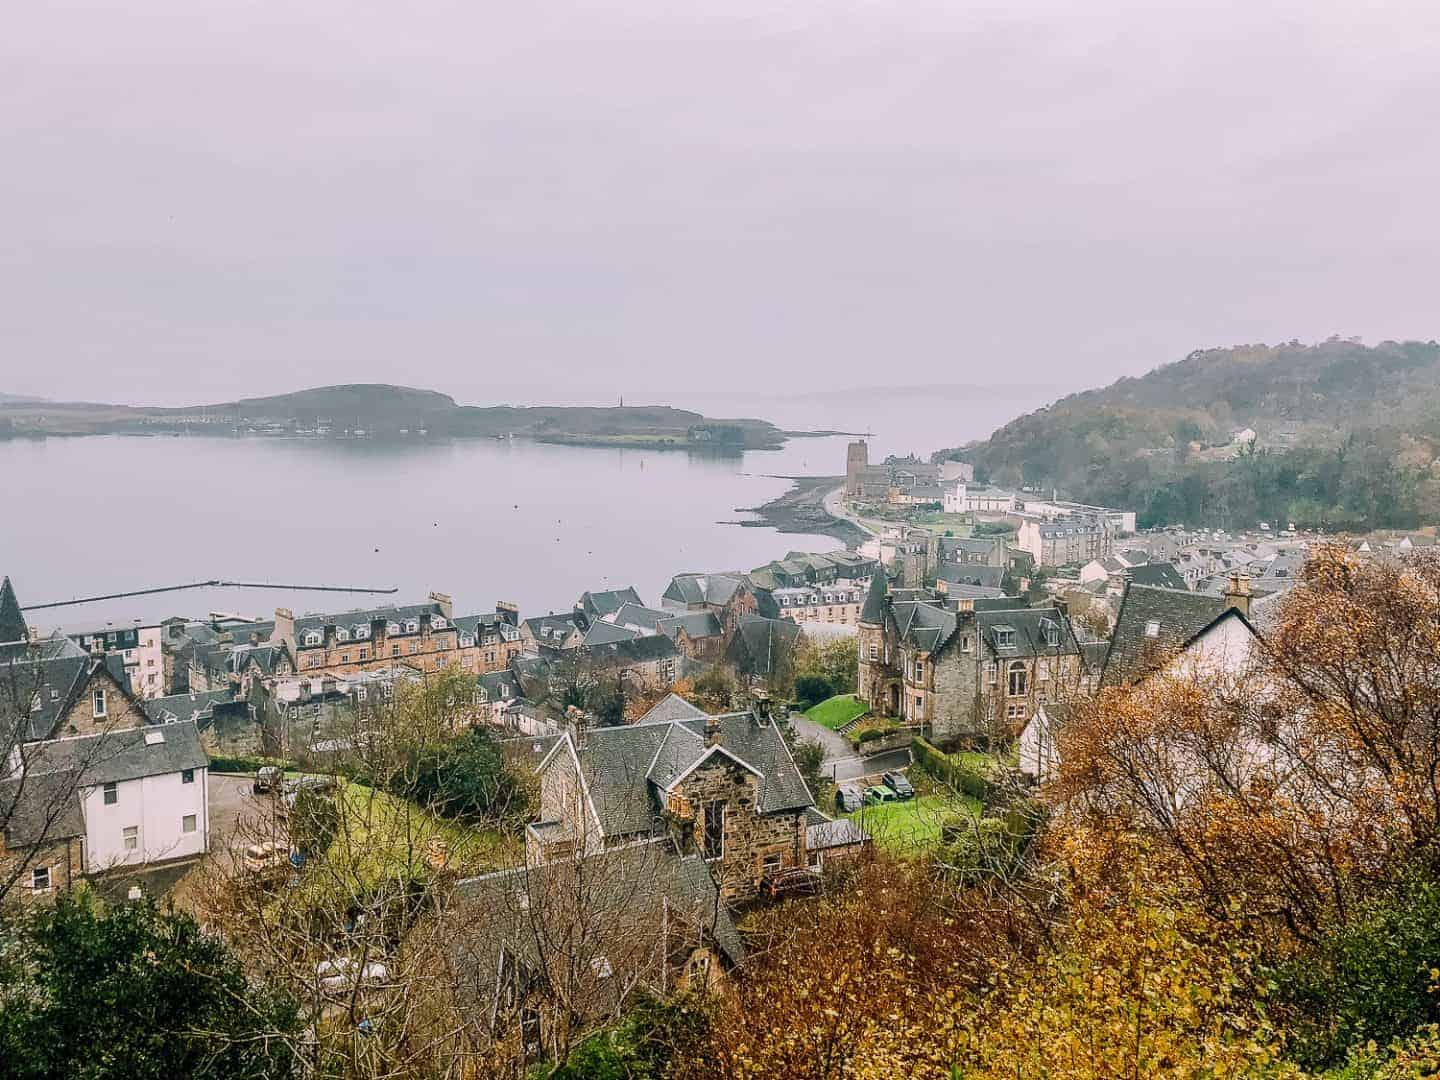 the town of oban from above